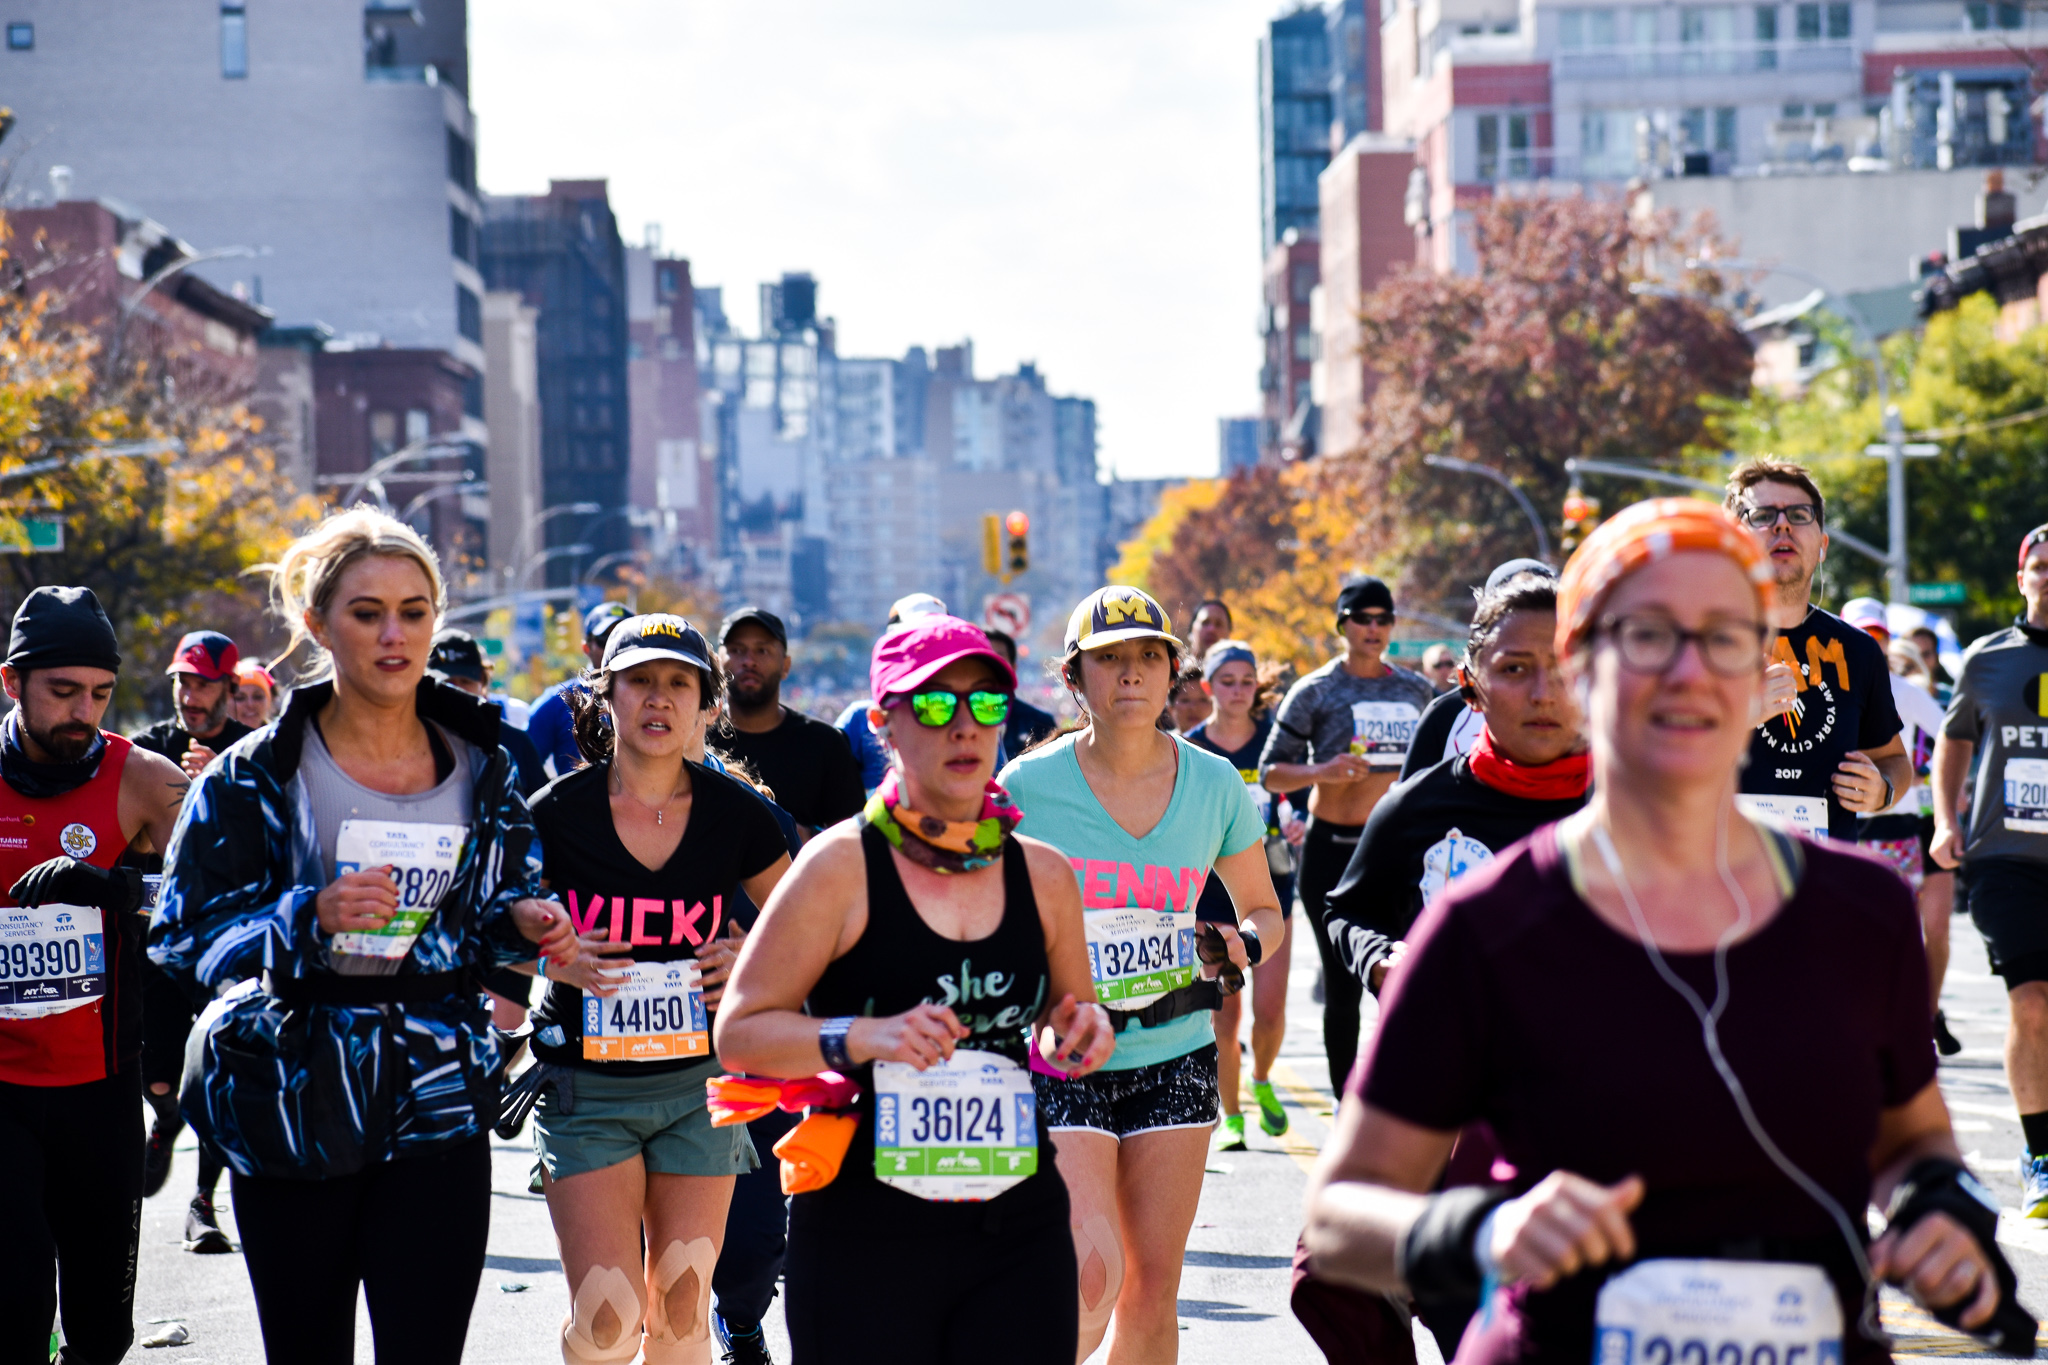 An estimated 3,000 menstruators, including women, non-binary people, and trans men, ran while menstruating during yesterday's marathon. (Kathryn Herchenroeder/NYCity News Service)